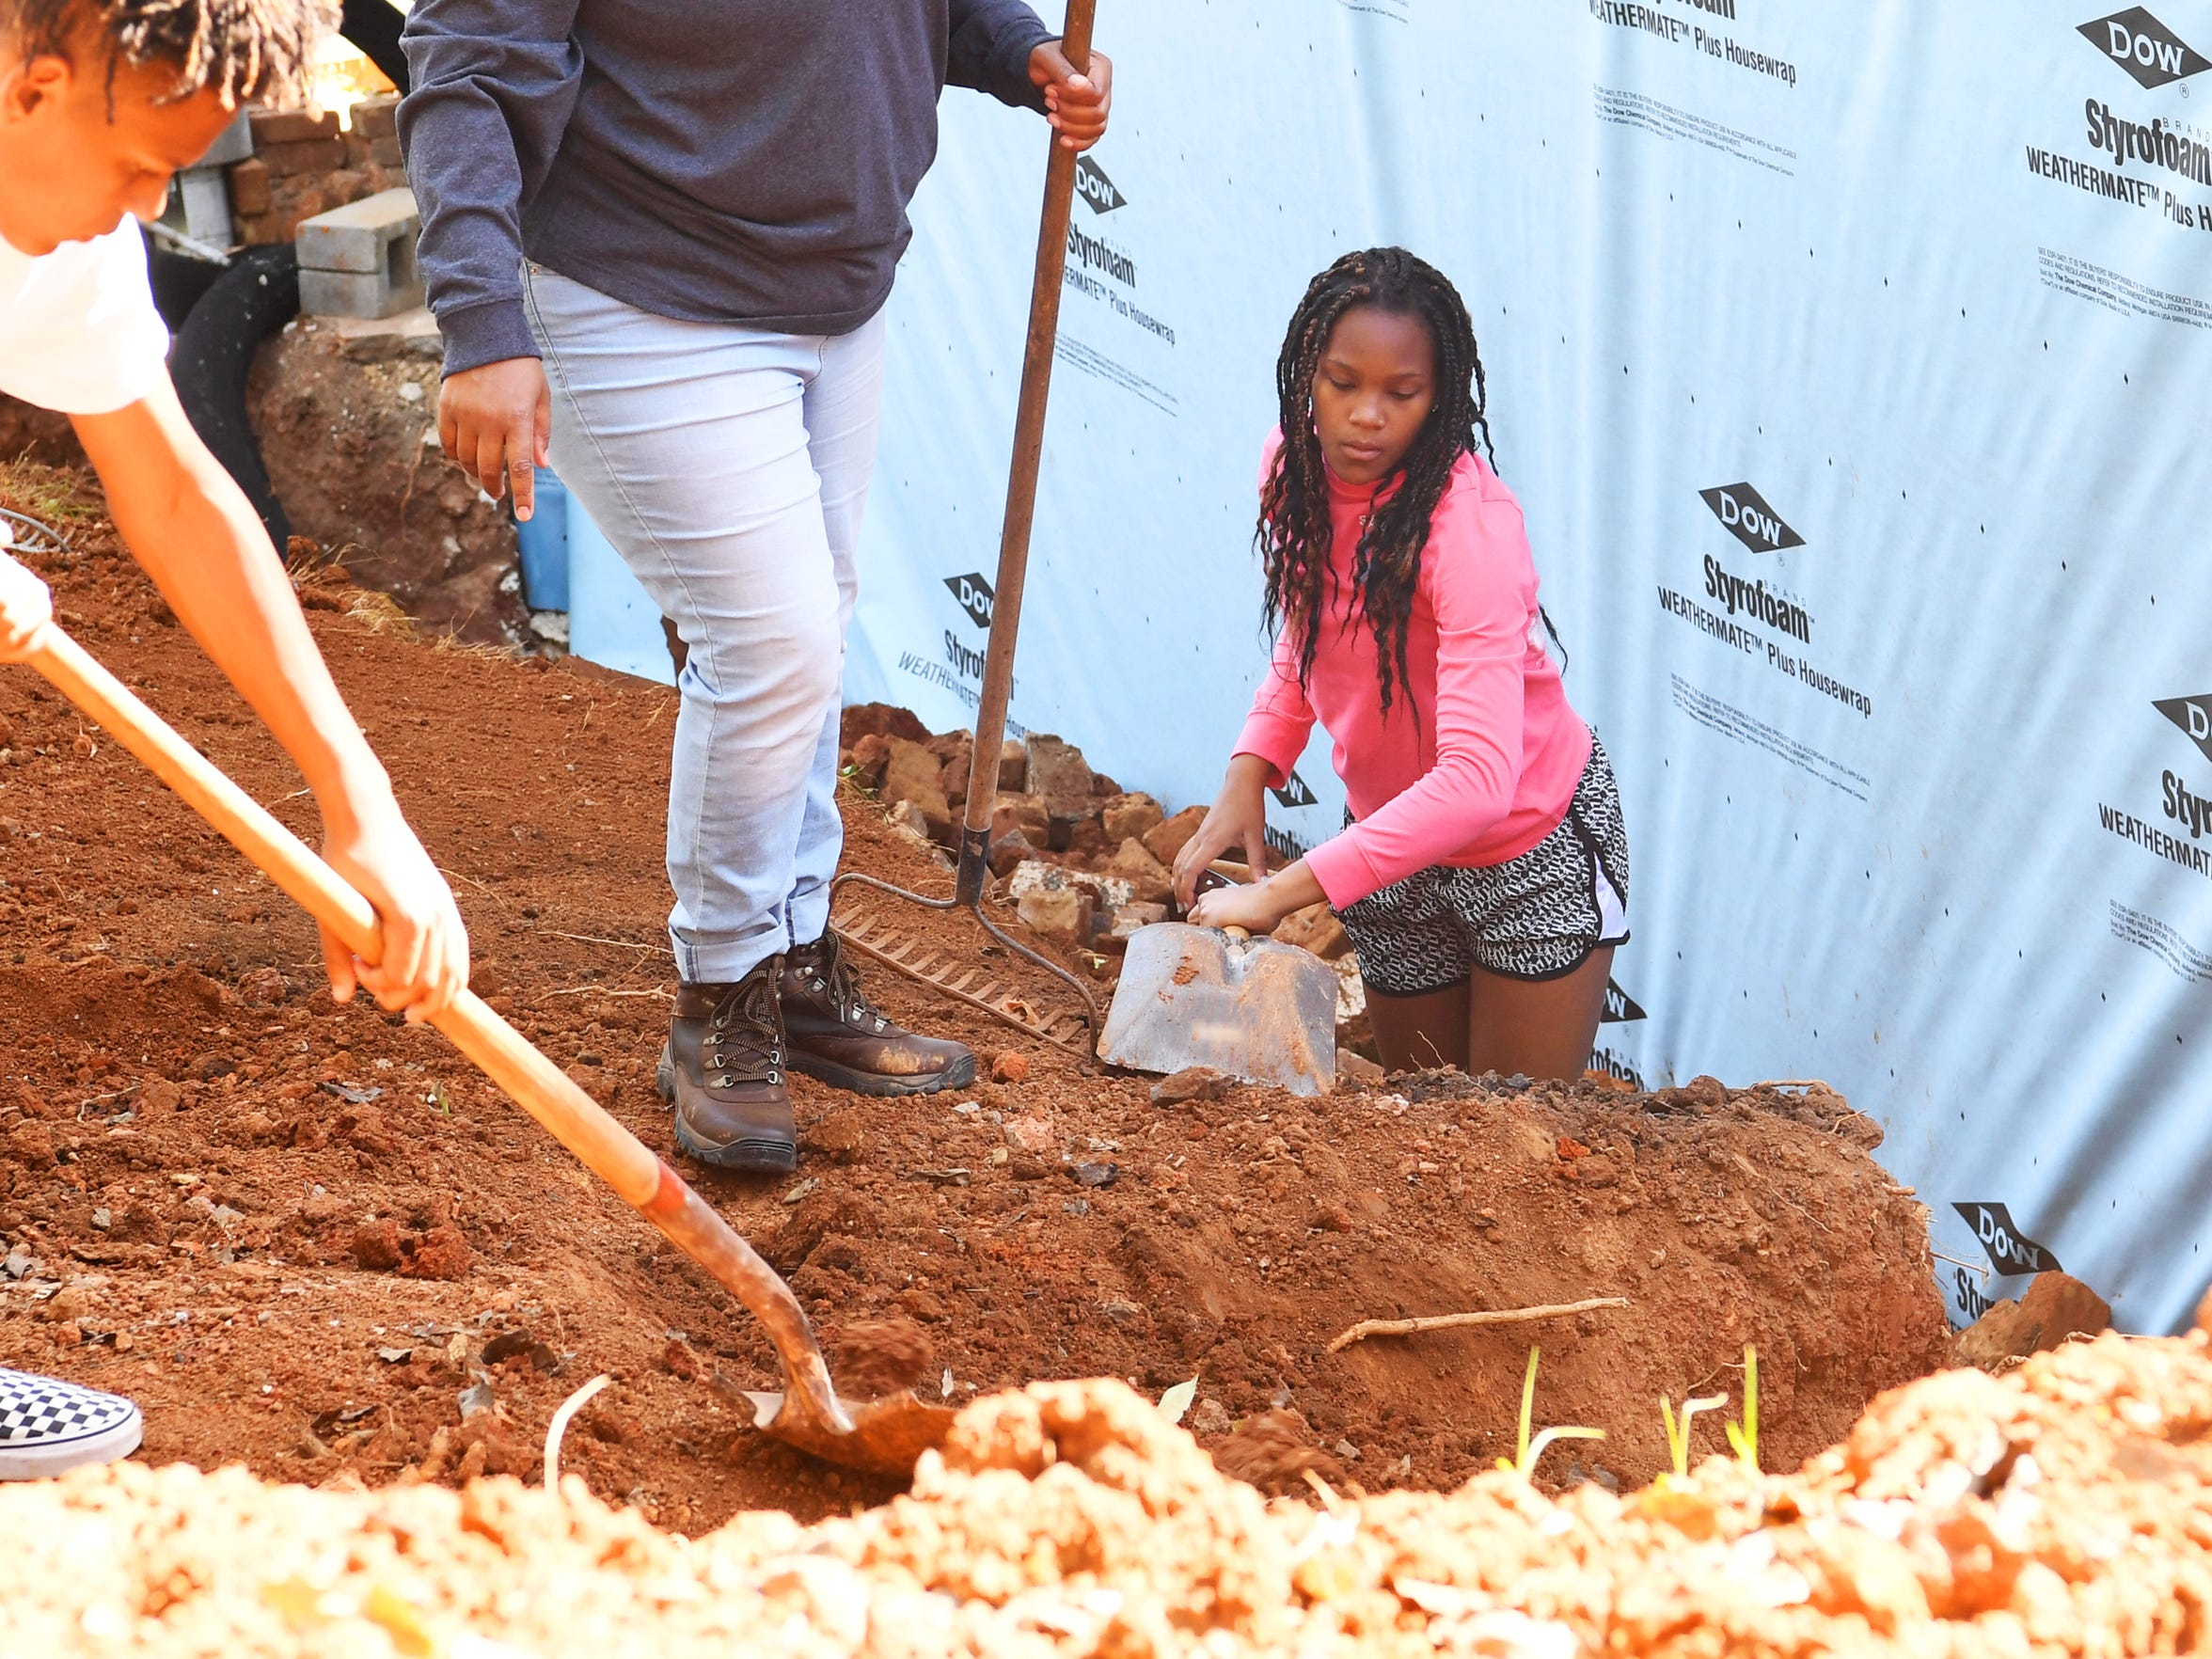 Thirteen-year-old Emysja Caul, a partner family member, works alongside her mother and brothers. They shovel dirt from a pile back into place around the house being renovated by Staunton-Augusta-Waynesboro Habitat for Humanity for her family on Saturday, Oct. 21, 2017. She works between 15-year-old son Kyiam Brown, 15, and 13-year-old daughter Emysja Caul.